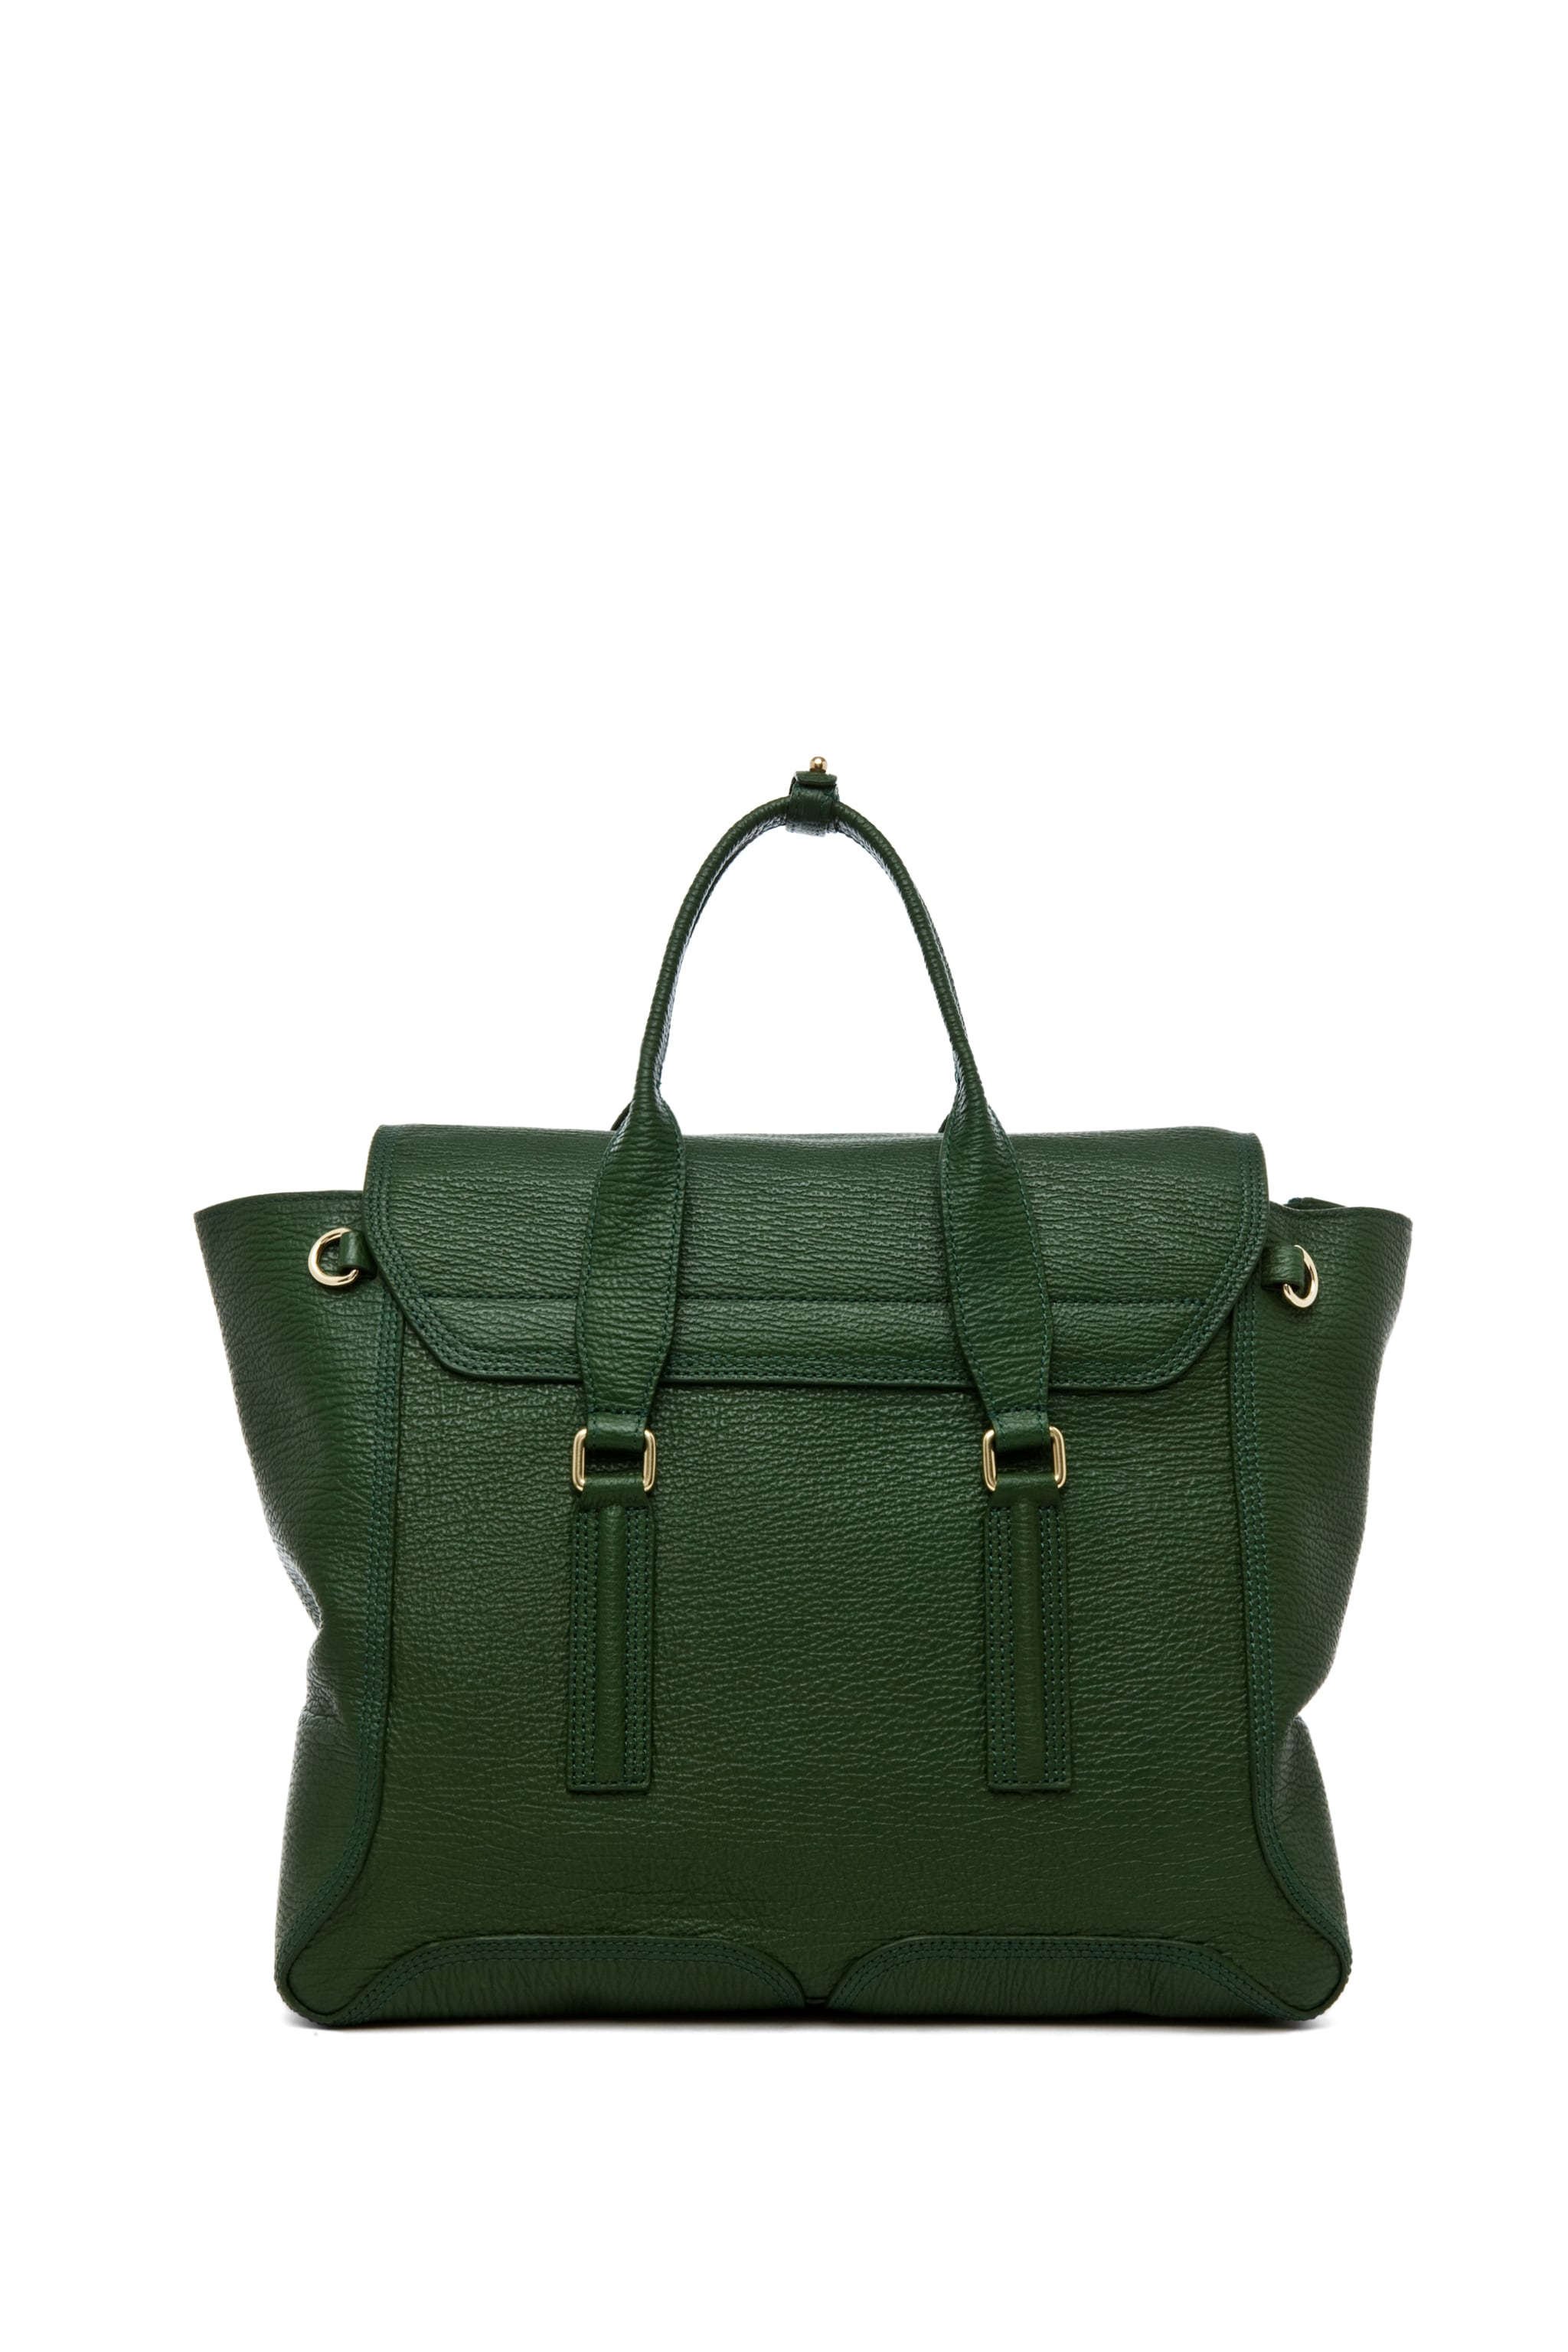 Image 2 of 3.1 phillip lim Large Pashli Trapeze in Jade